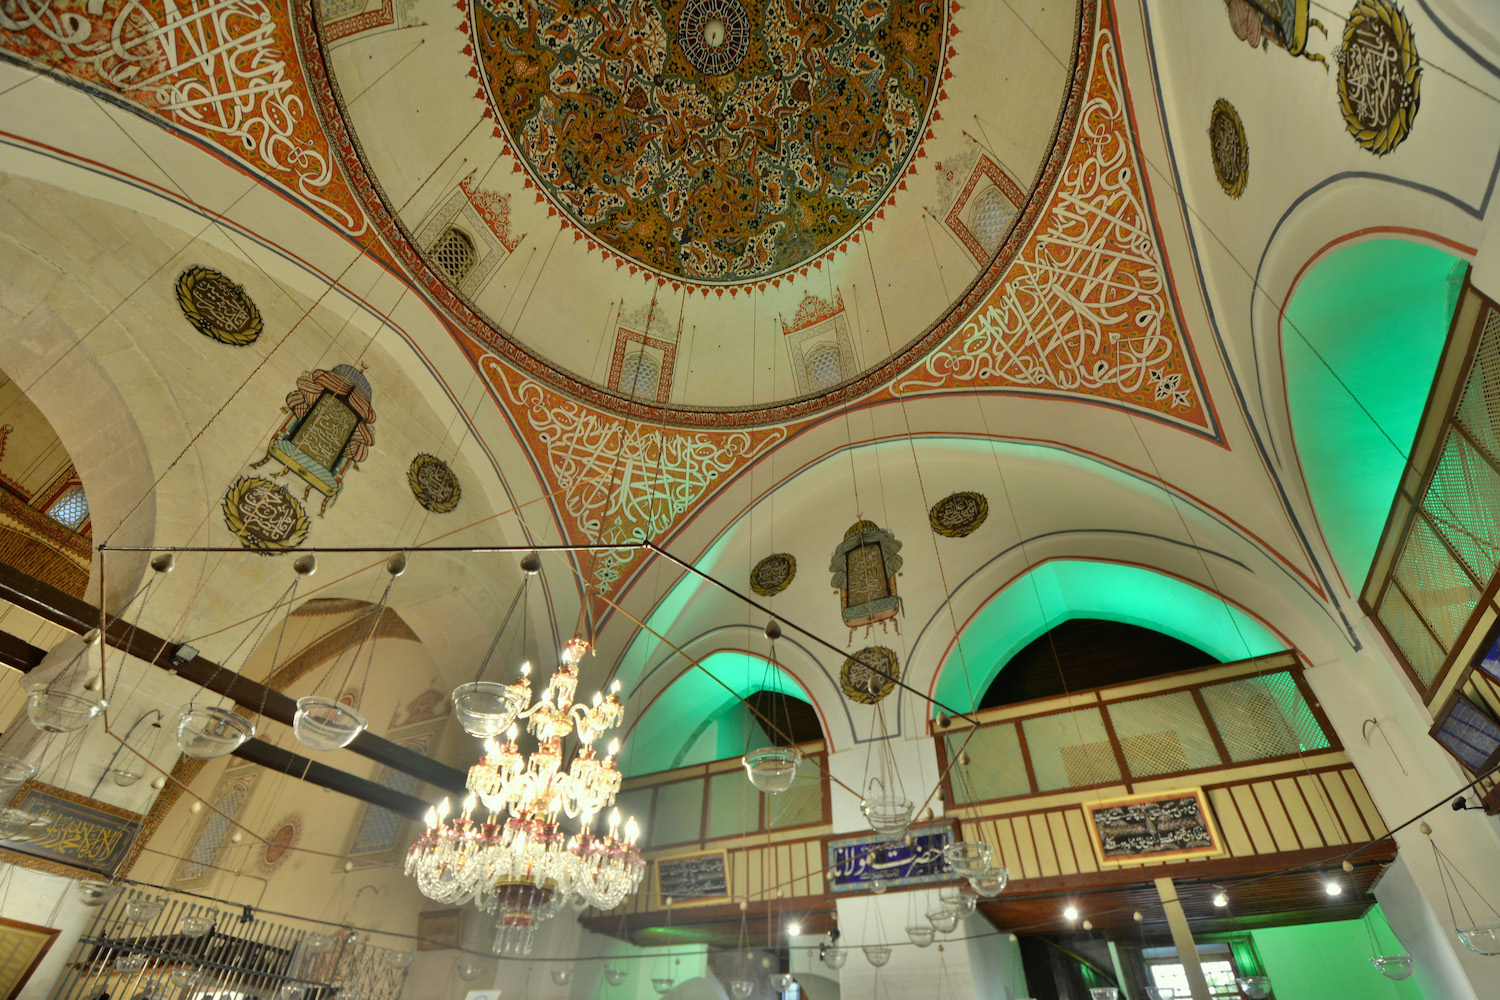 Green Mausoleum in Konya, Turkey